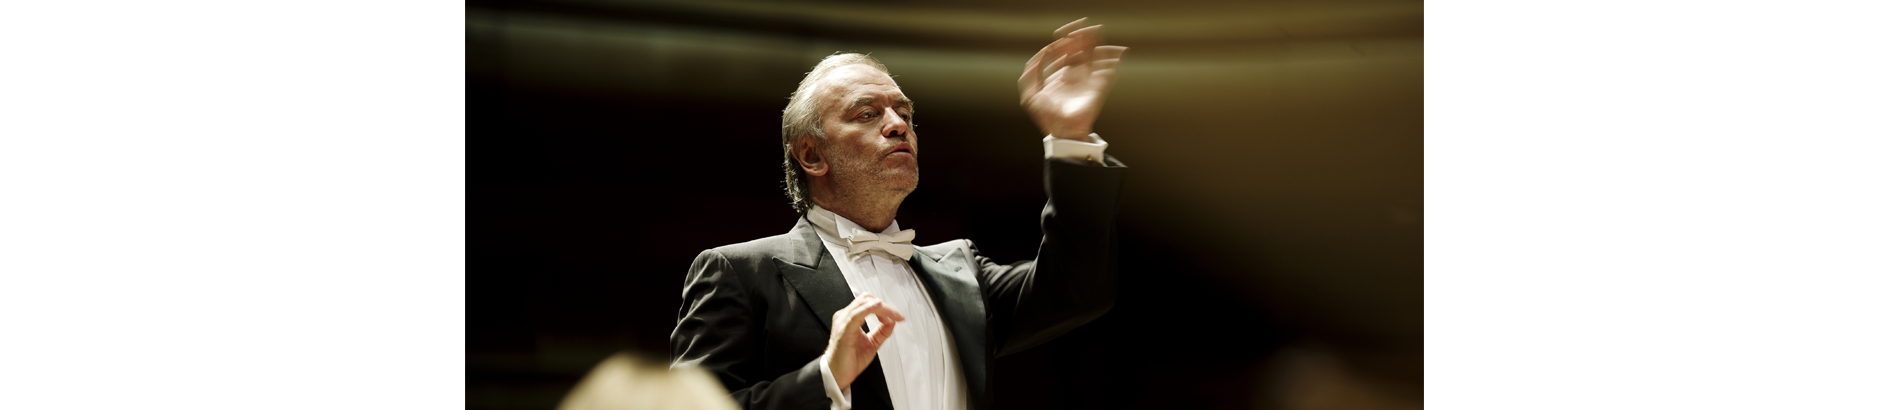 Valery Gergiev conducts Shchedrin – With Pelageya Kurennaya, Ekaterina Sergeyeva, Larisa Yudina, Anna Kiknadze, and others